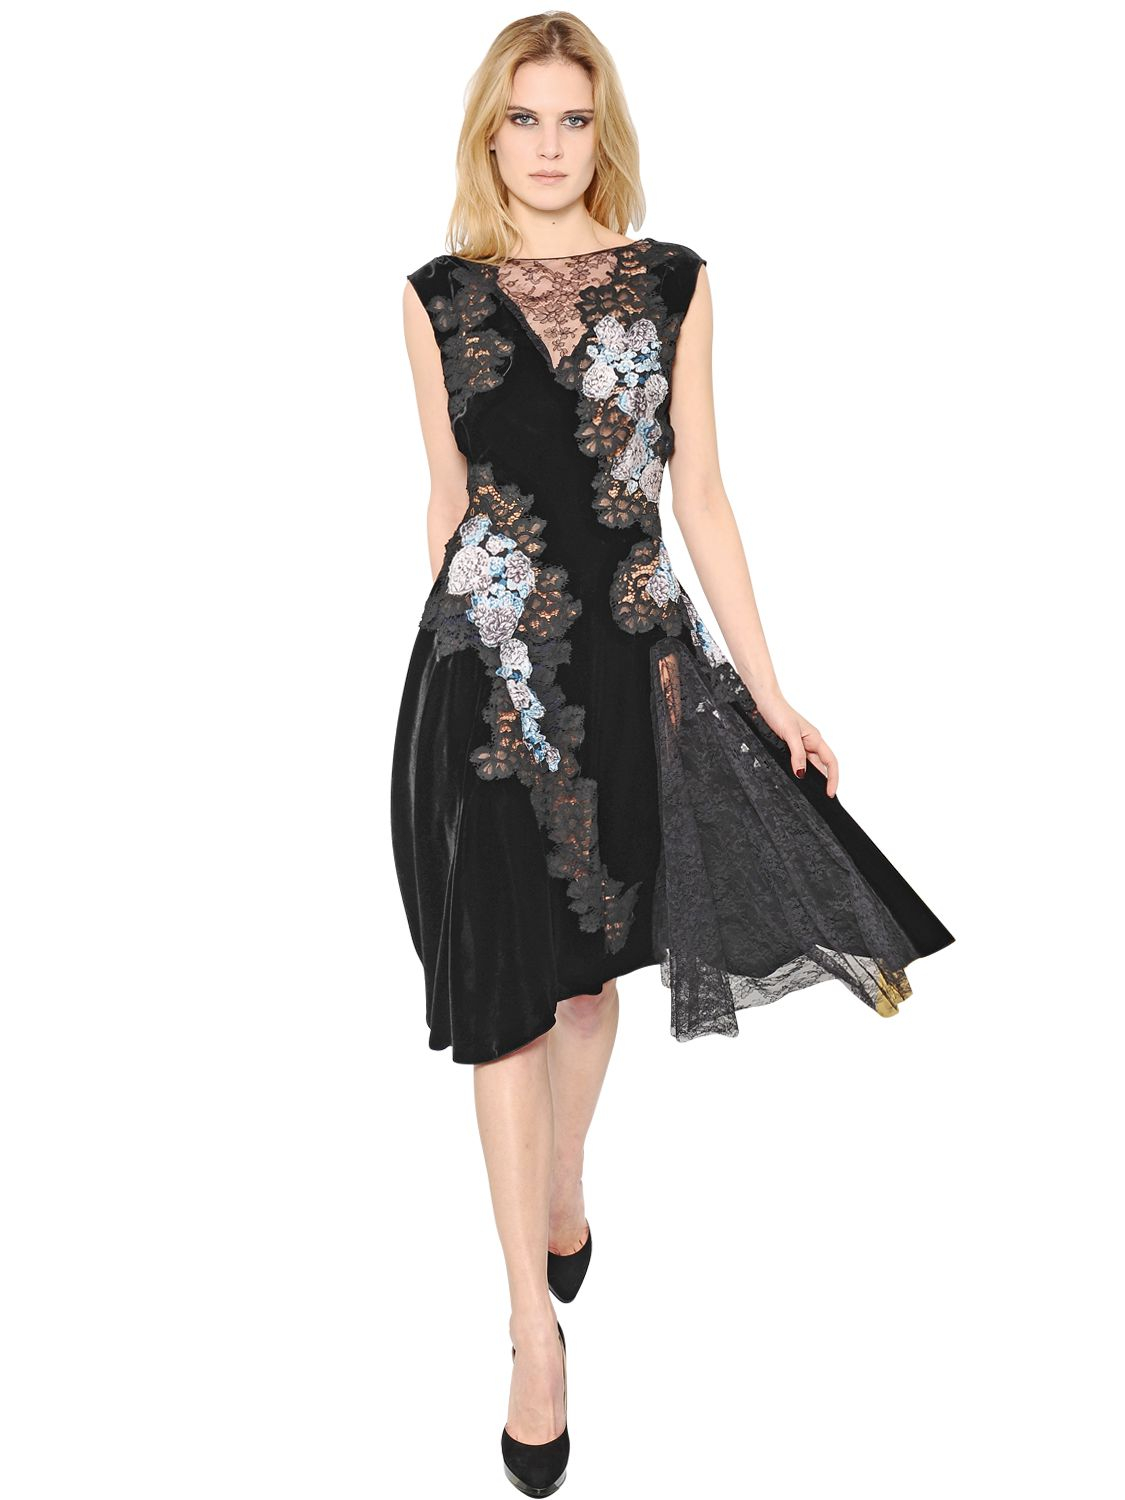 Lyst - Nina Ricci Velvet And Lace Dress in Black 1a93823d4